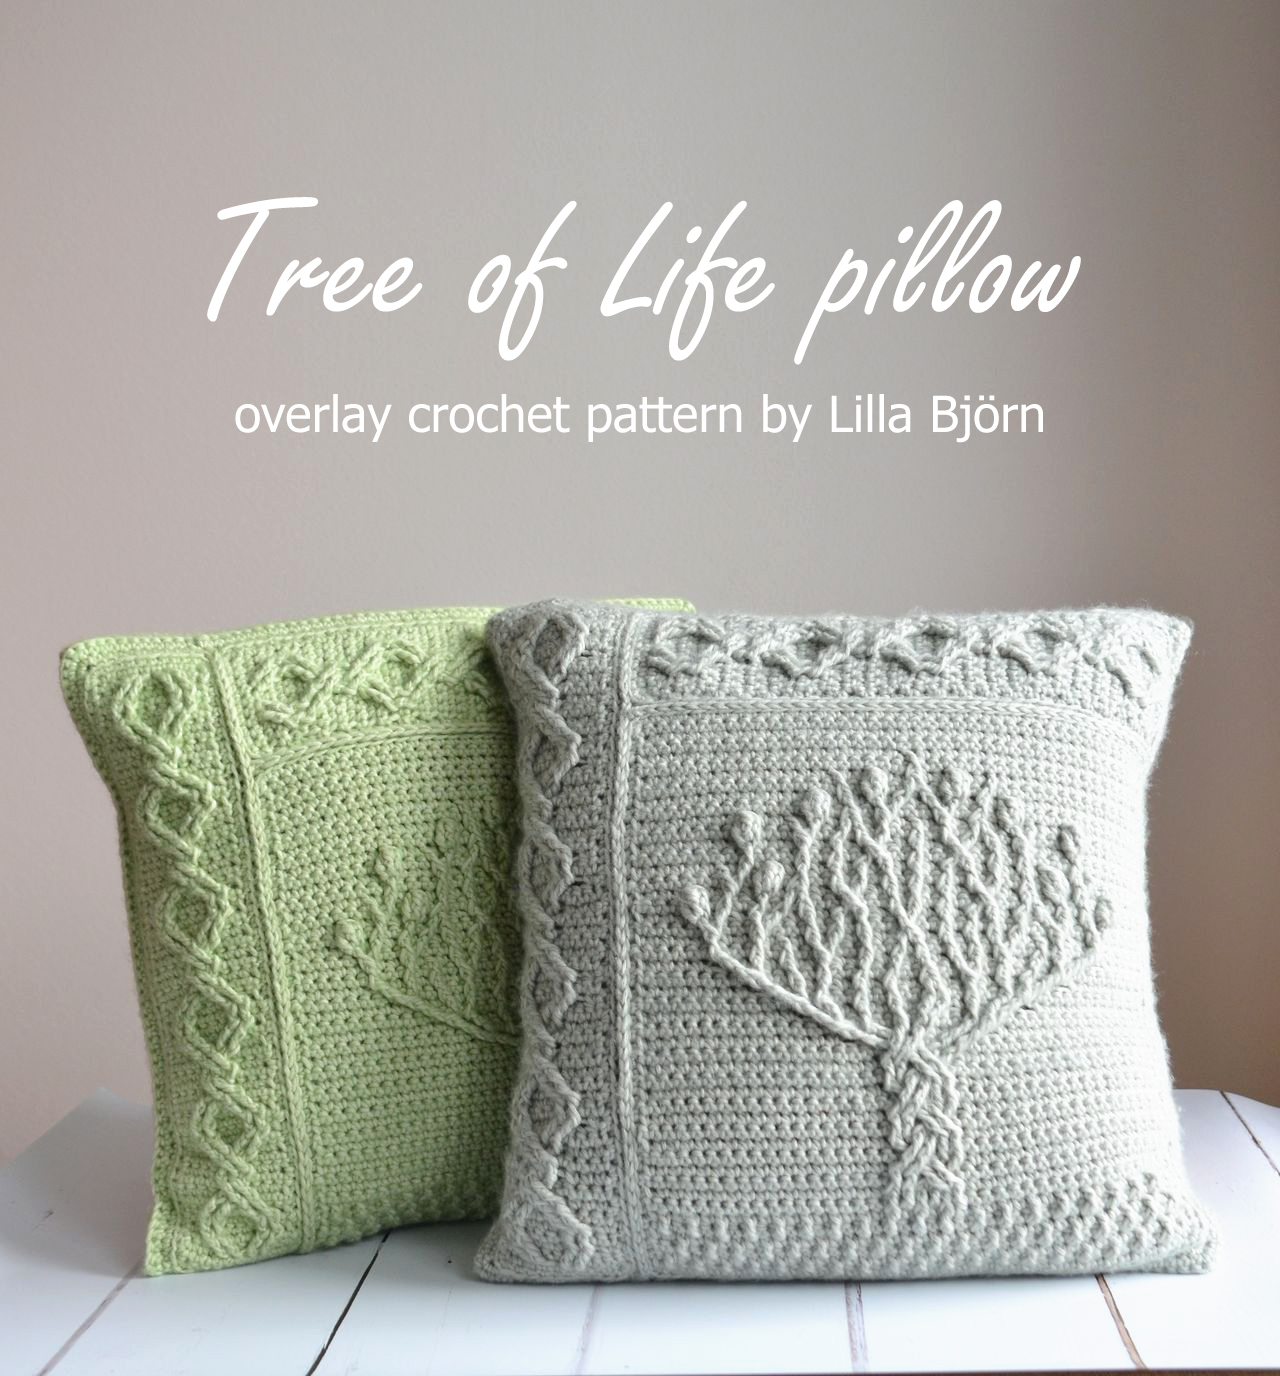 Tree of Life pillow – new overlay crochet pattern | LillaBjörn's